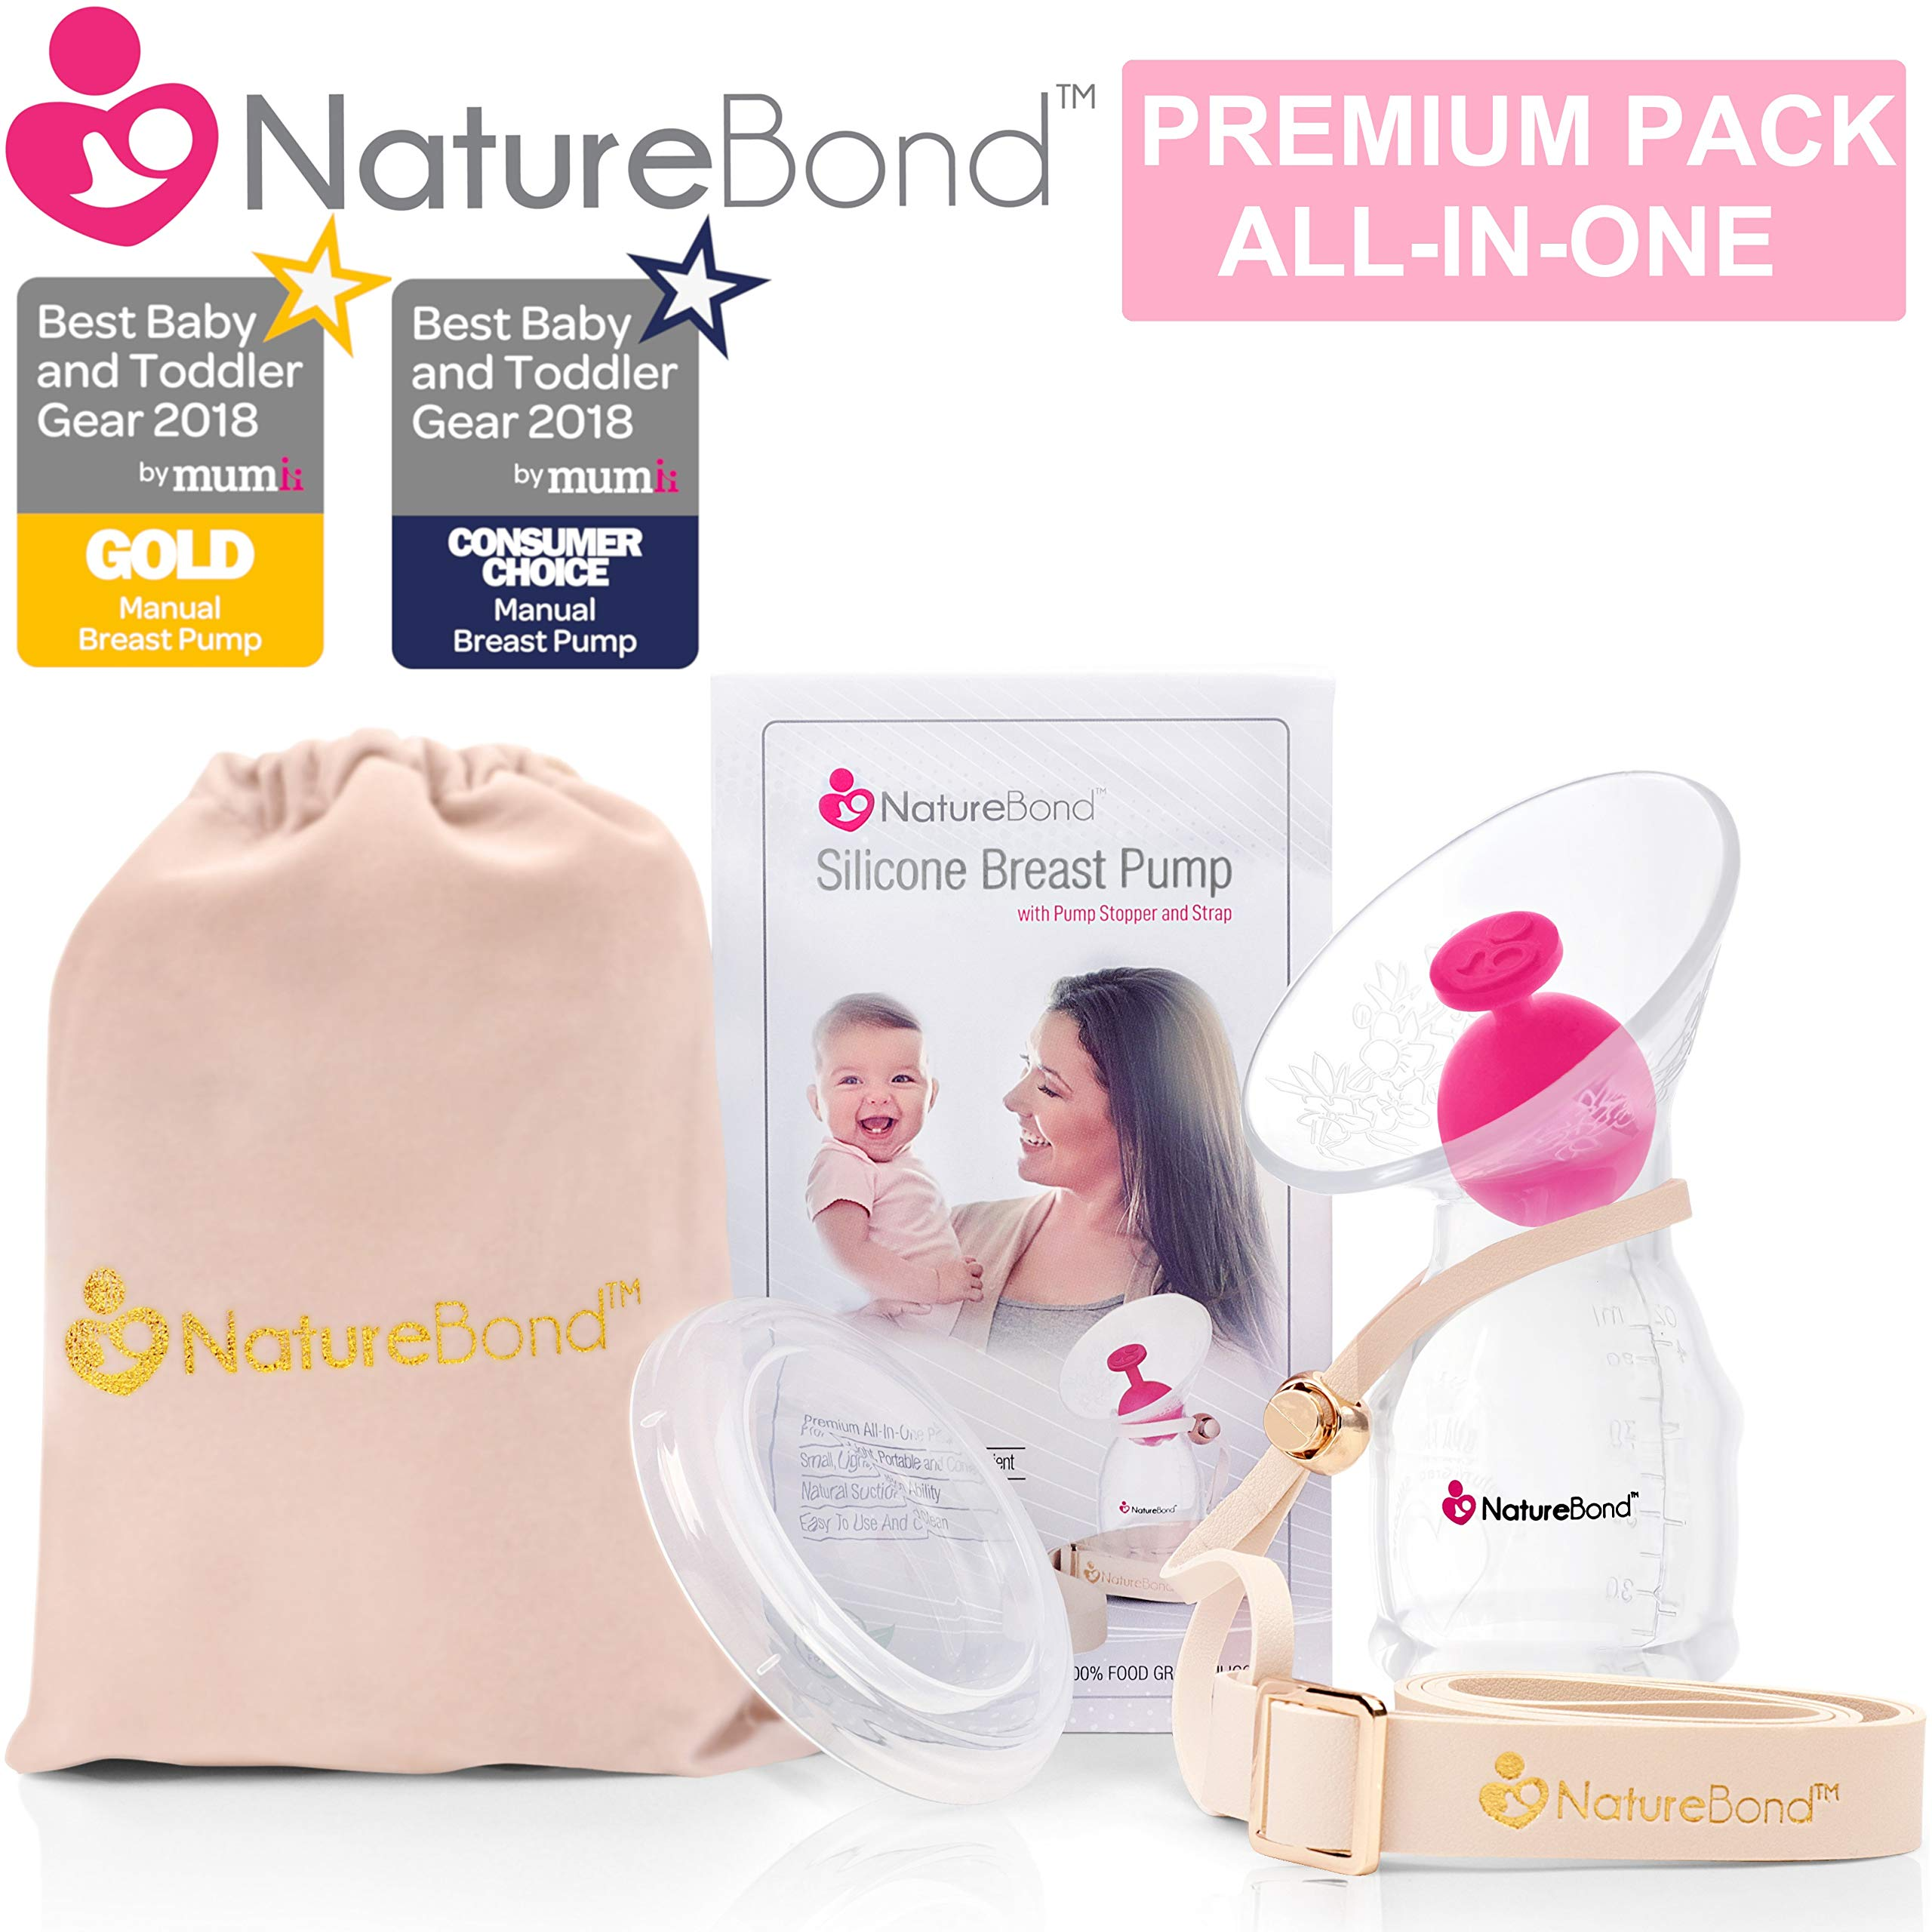 NatureBond Silicone Breastfeeding Manual Breast Pump Milk Saver Nursing Pump | All-in-1 Pump Strap, Stopper, Cover Lid, Carry Pouch, Air-Tight Vacuum Sealed in Hardcover Gift Box. BPA Free by NatureBond